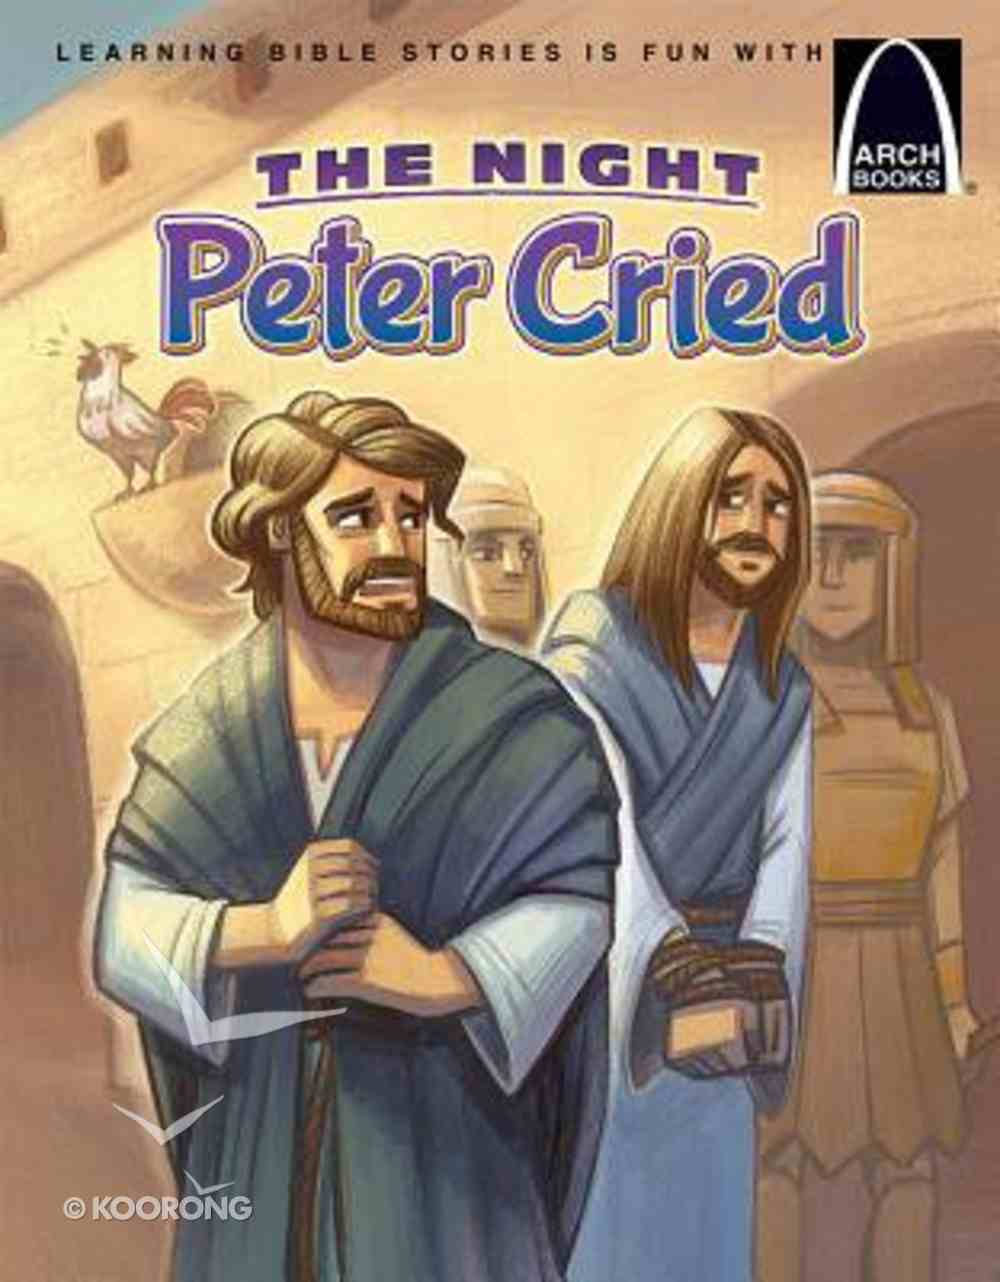 The Night Peter Cried (Arch Books Series) Paperback